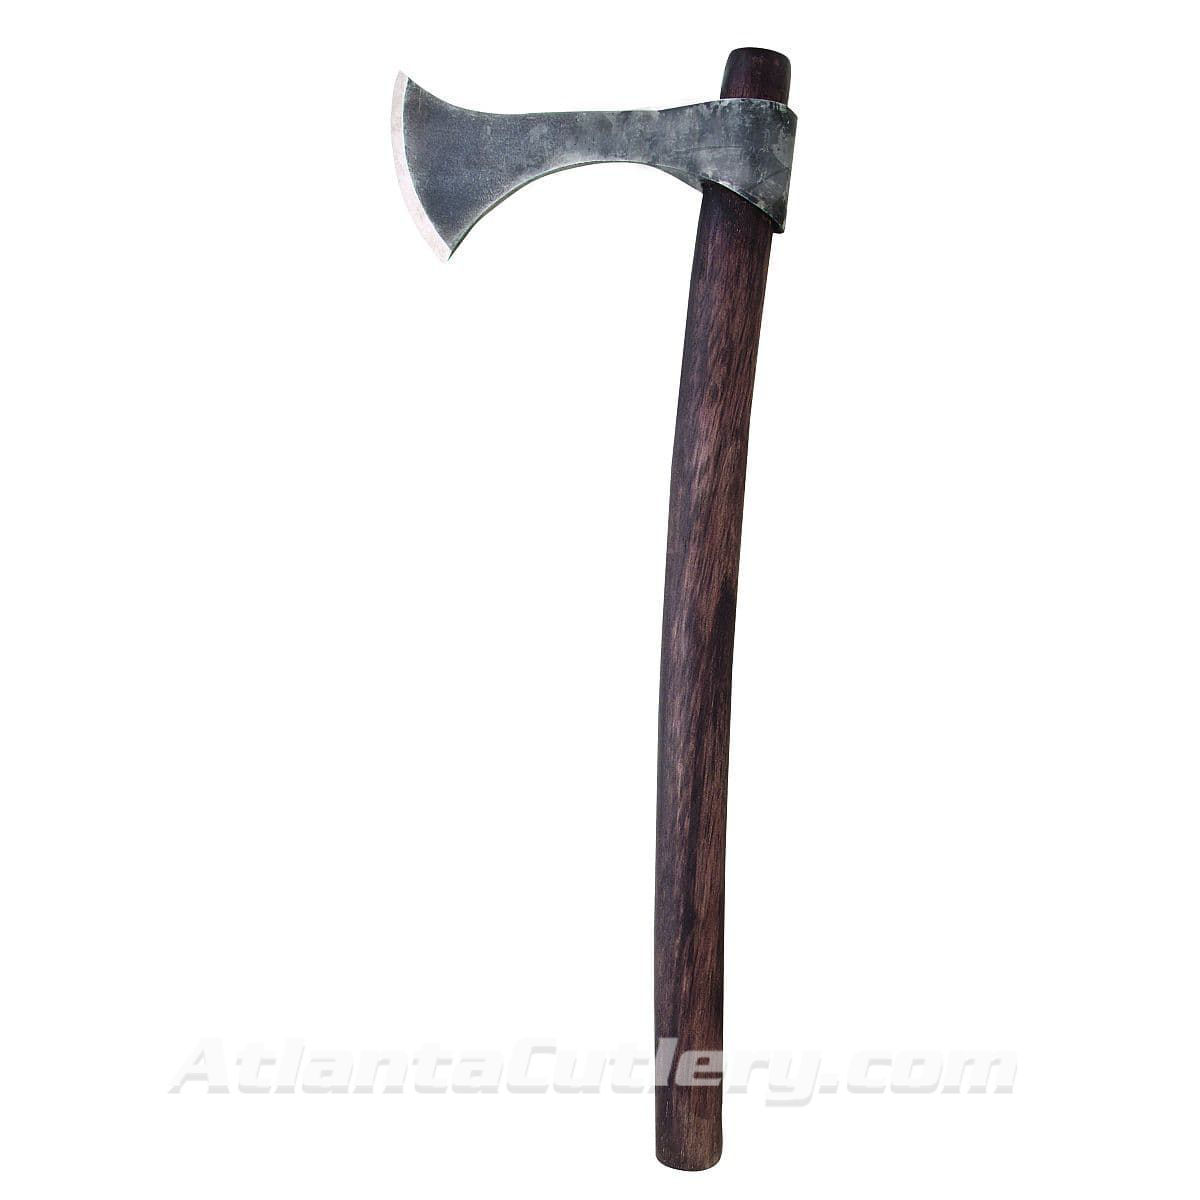 Francesca Frankish Axe with Rough Forged Blade and Curved Shaft